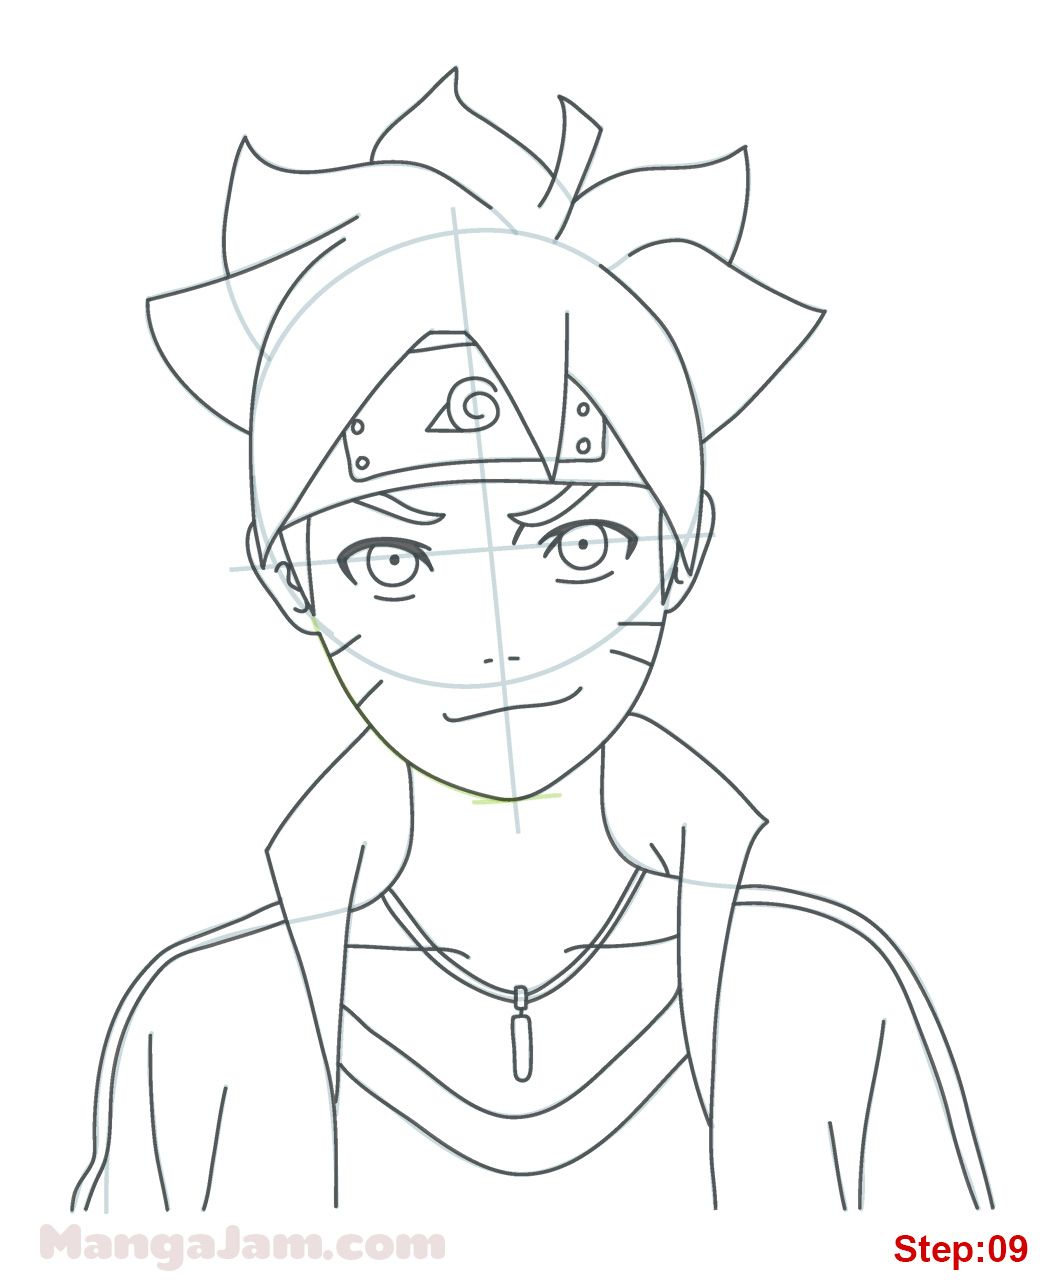 How to draw boruto uzumaki from naruto step 09 projects - Naruto dessin anime ...